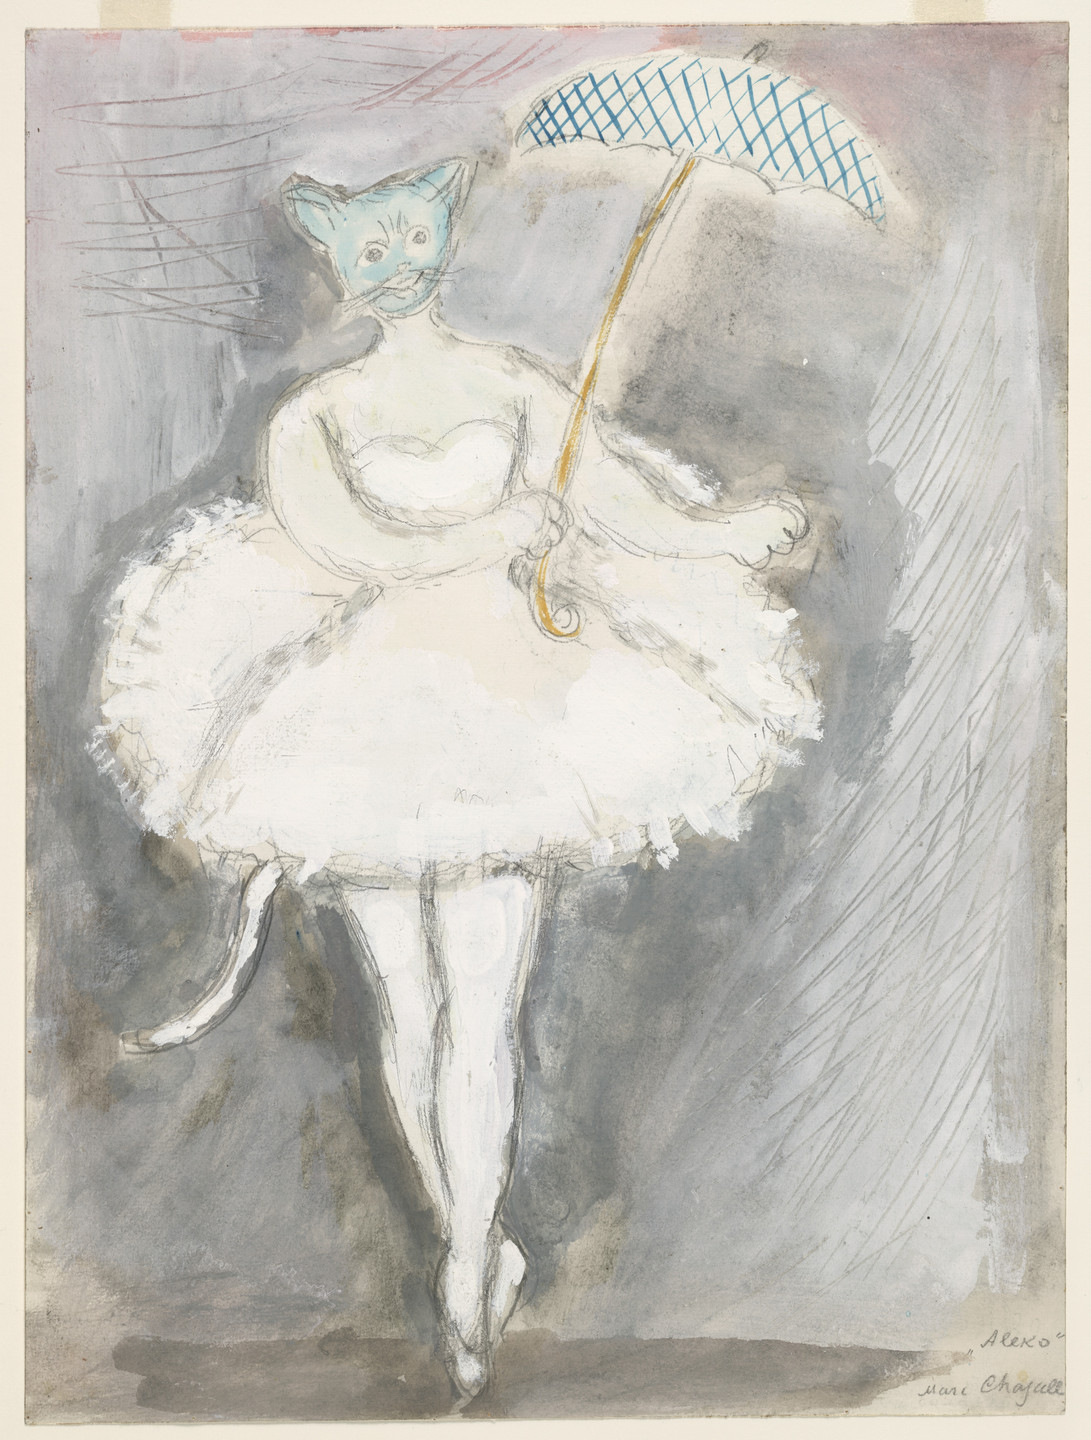 Marc Chagall. A Cat. Costume design for Scene IV of the ballet Aleko. 1942